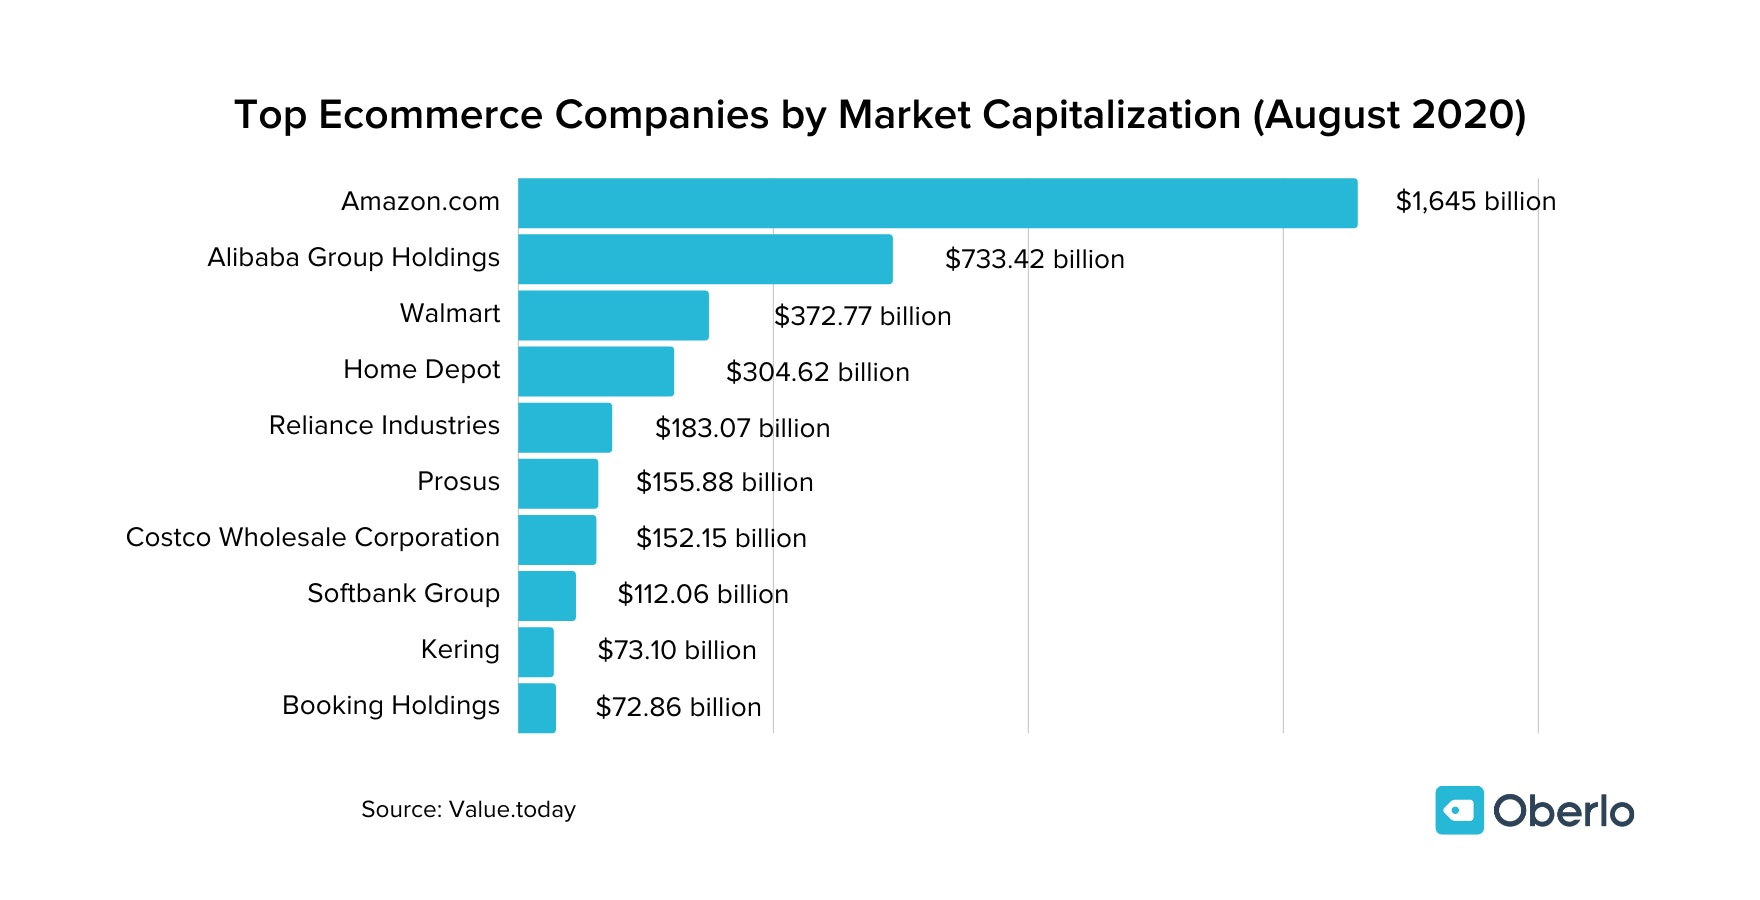 Top Ecommerce Companies in 2020